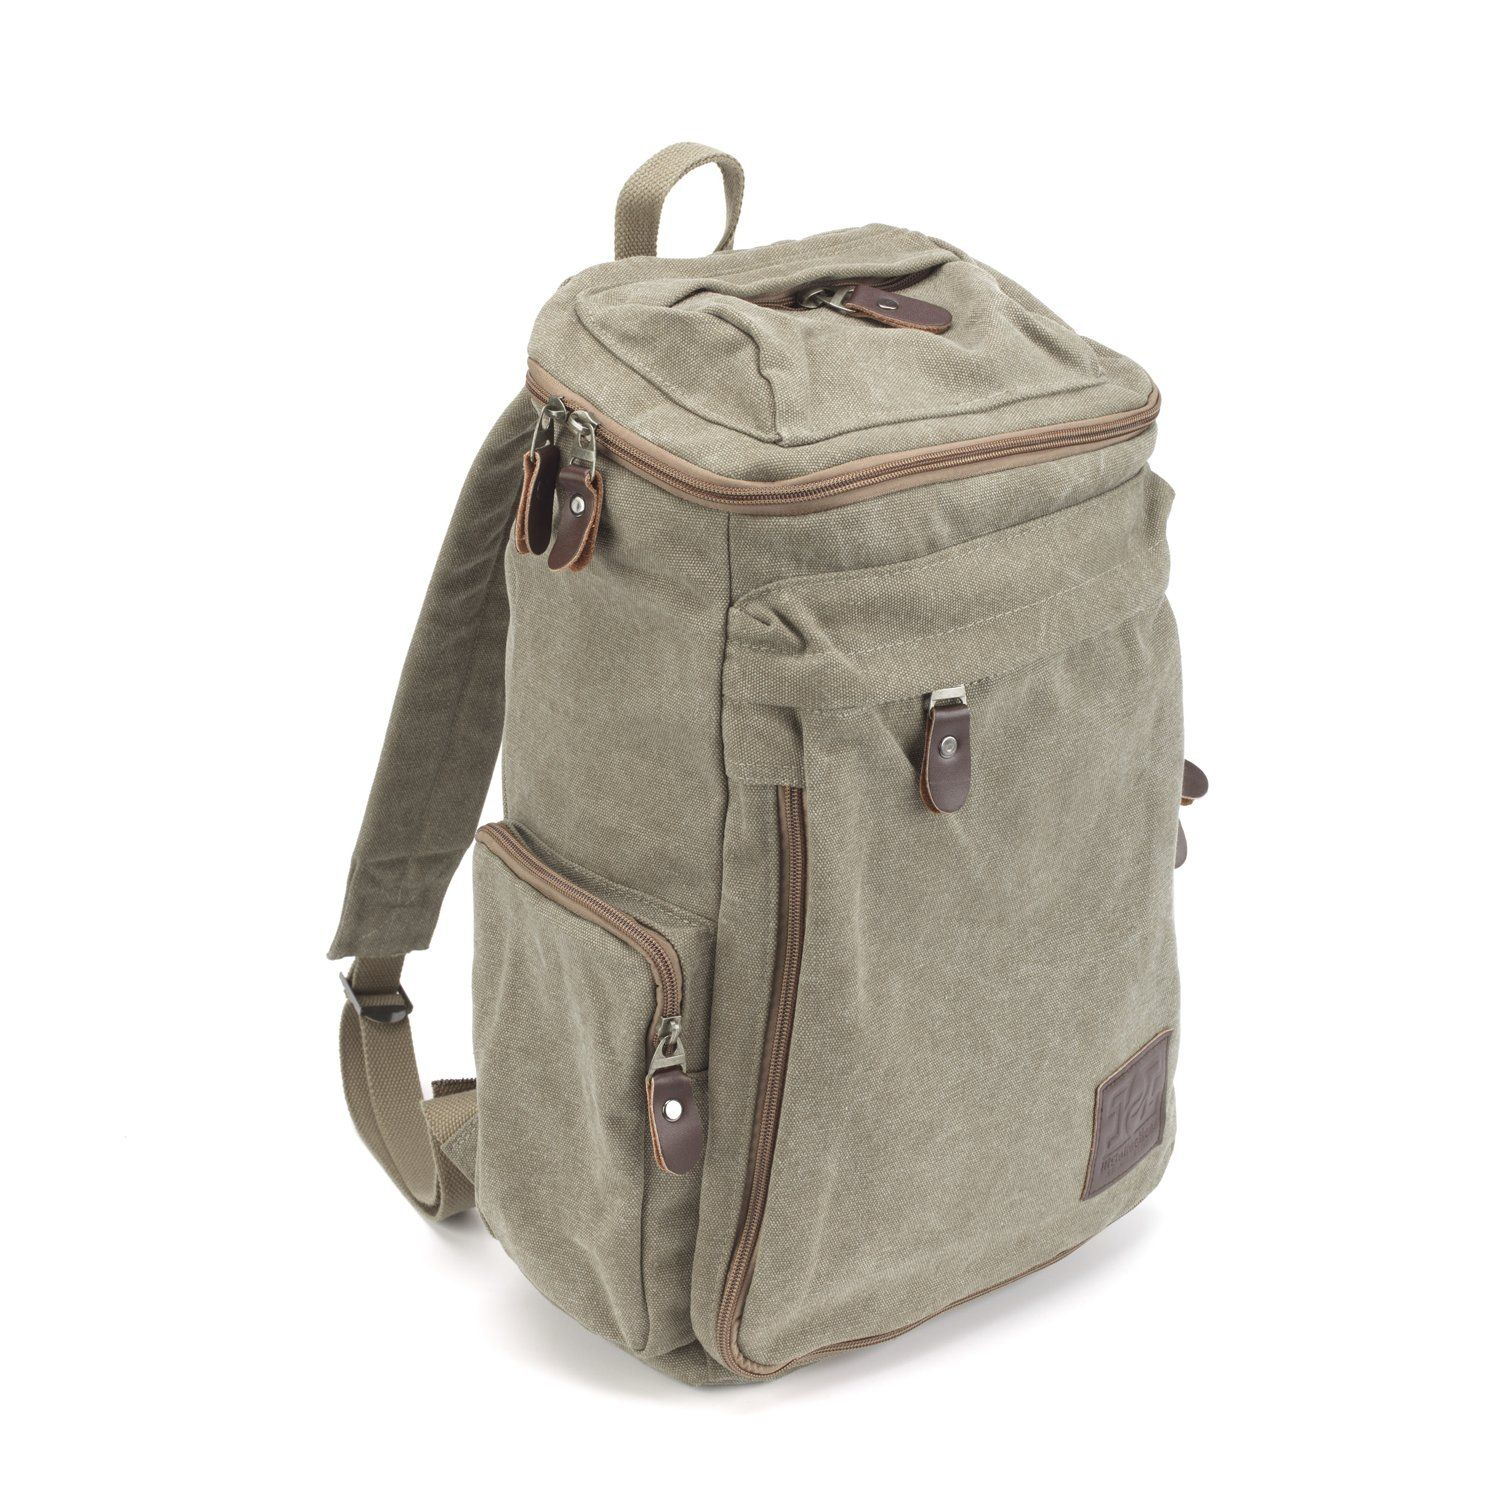 Hicollections Travel Vintage Canvas Messenger Backpack Sport Rucksack Camping School Satchel Hiking Military Laptop Bag